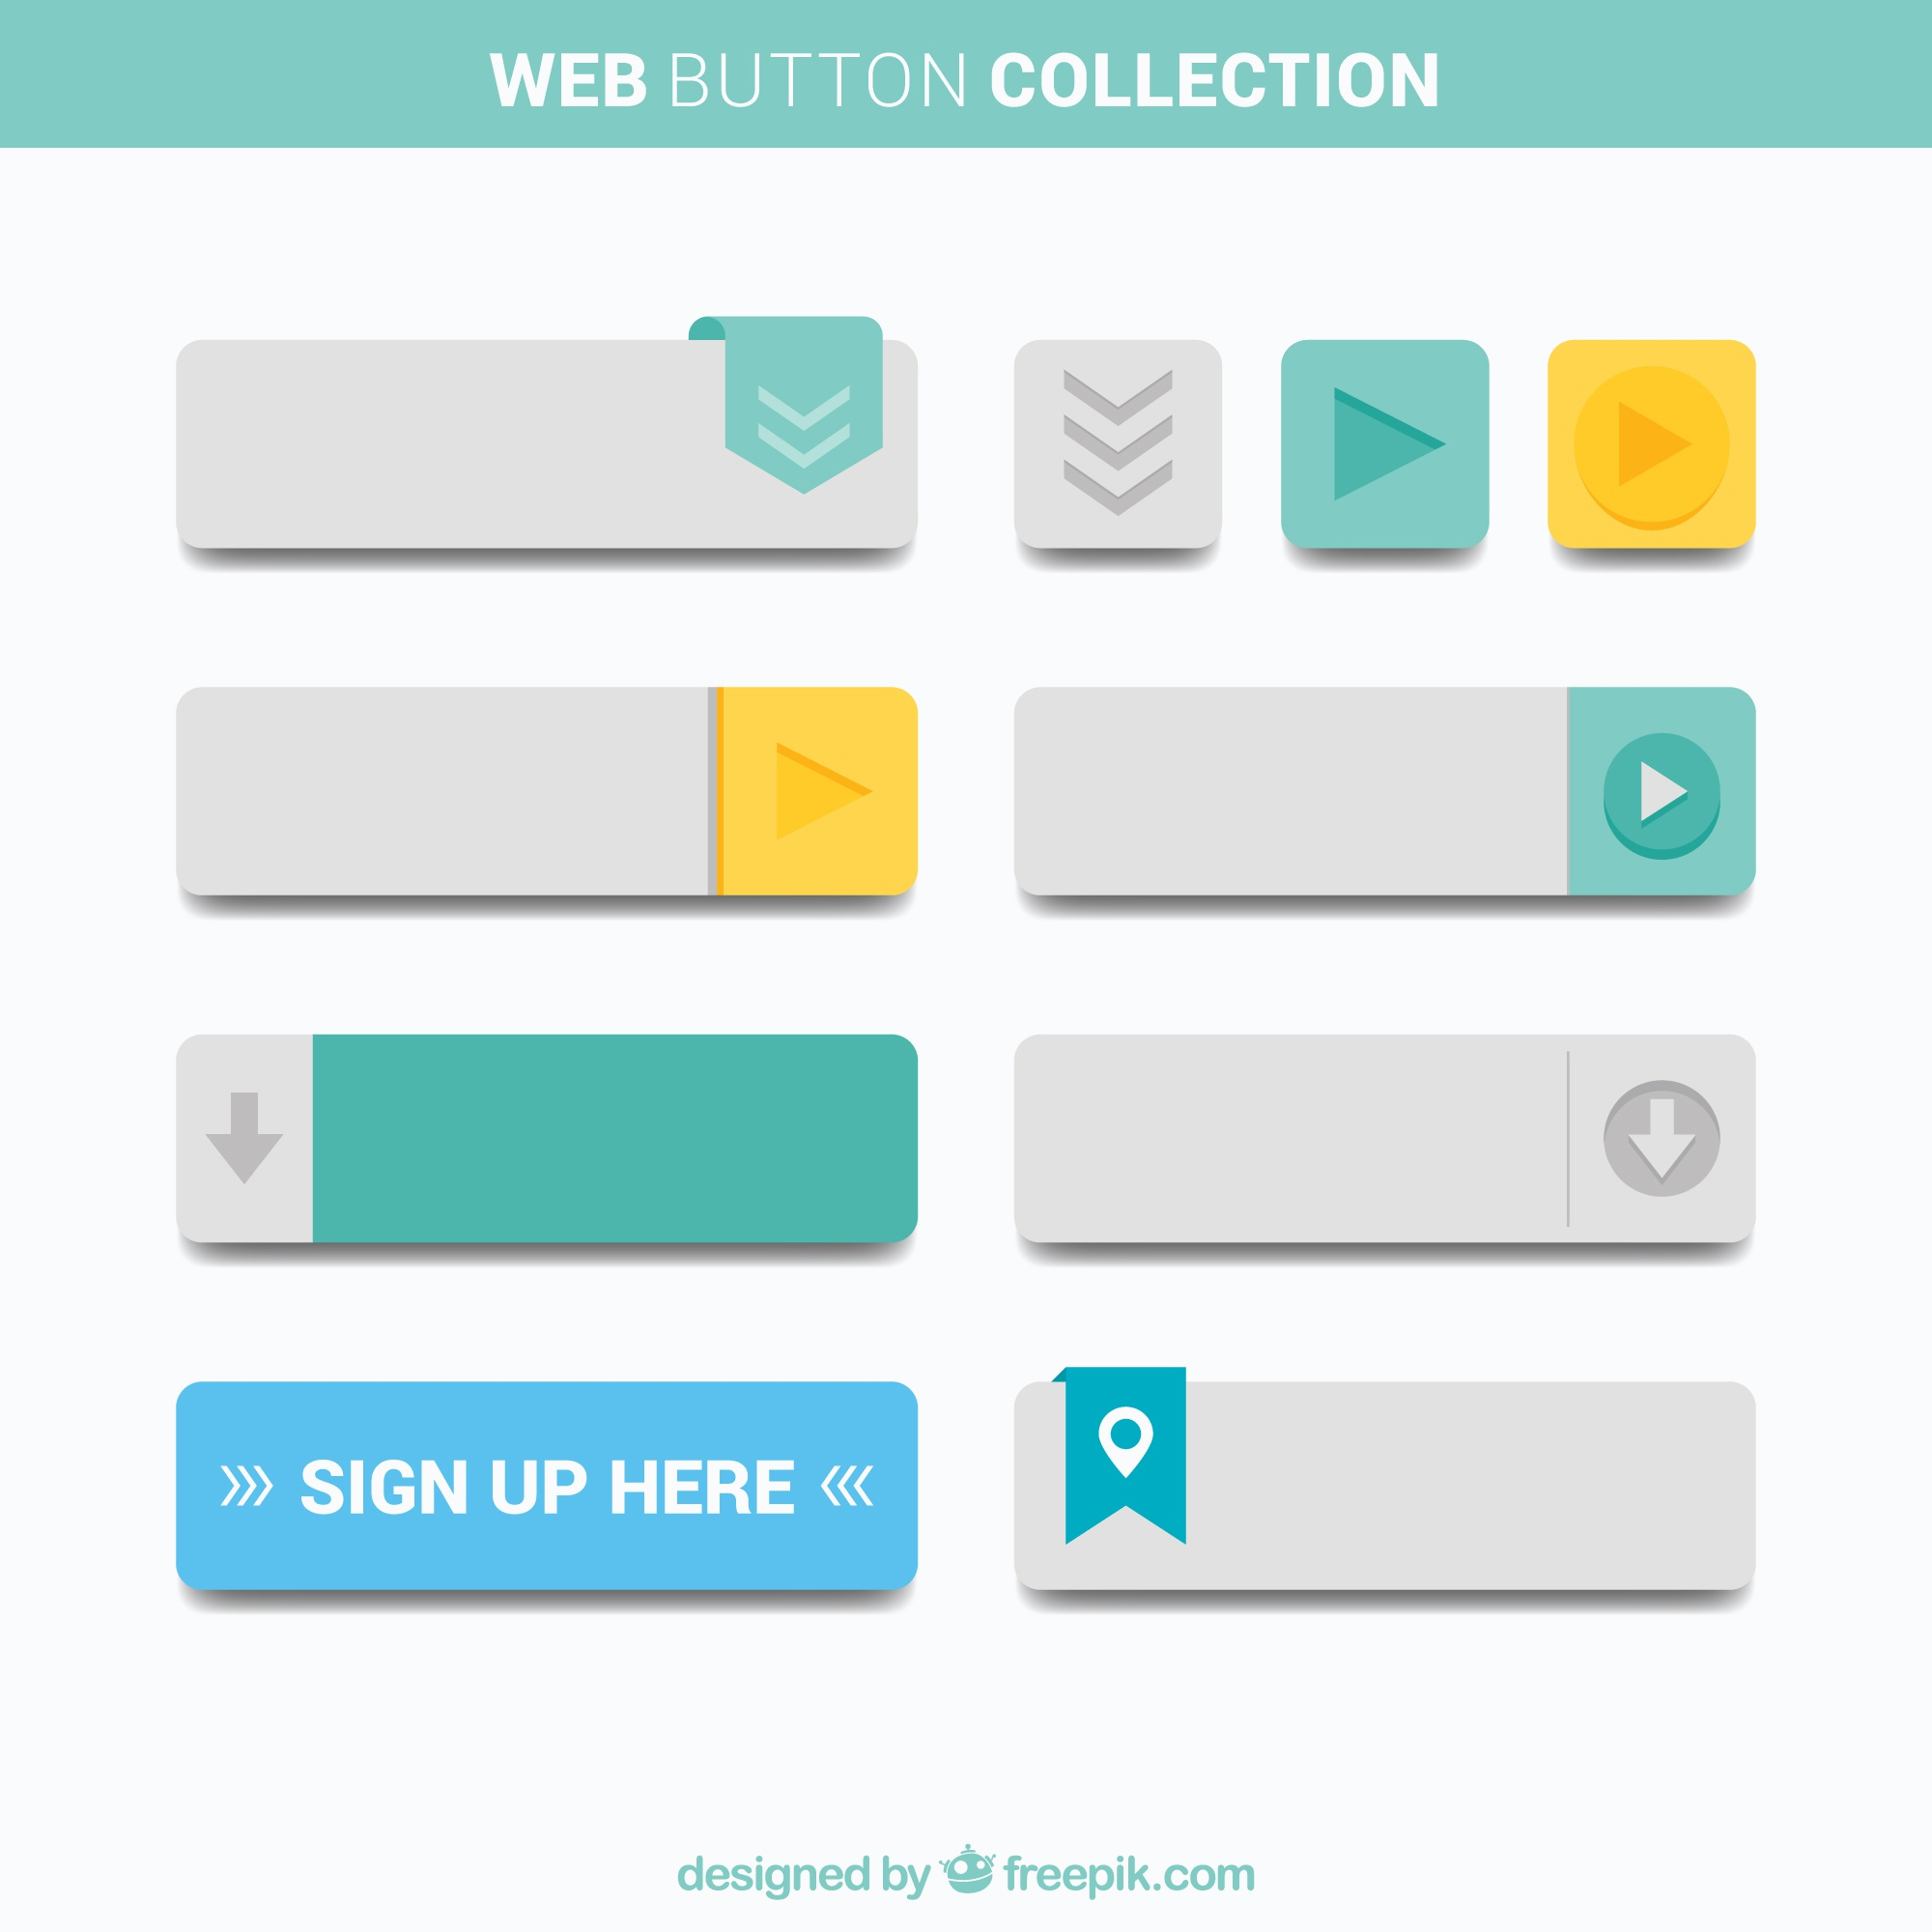 Buttons collection Web